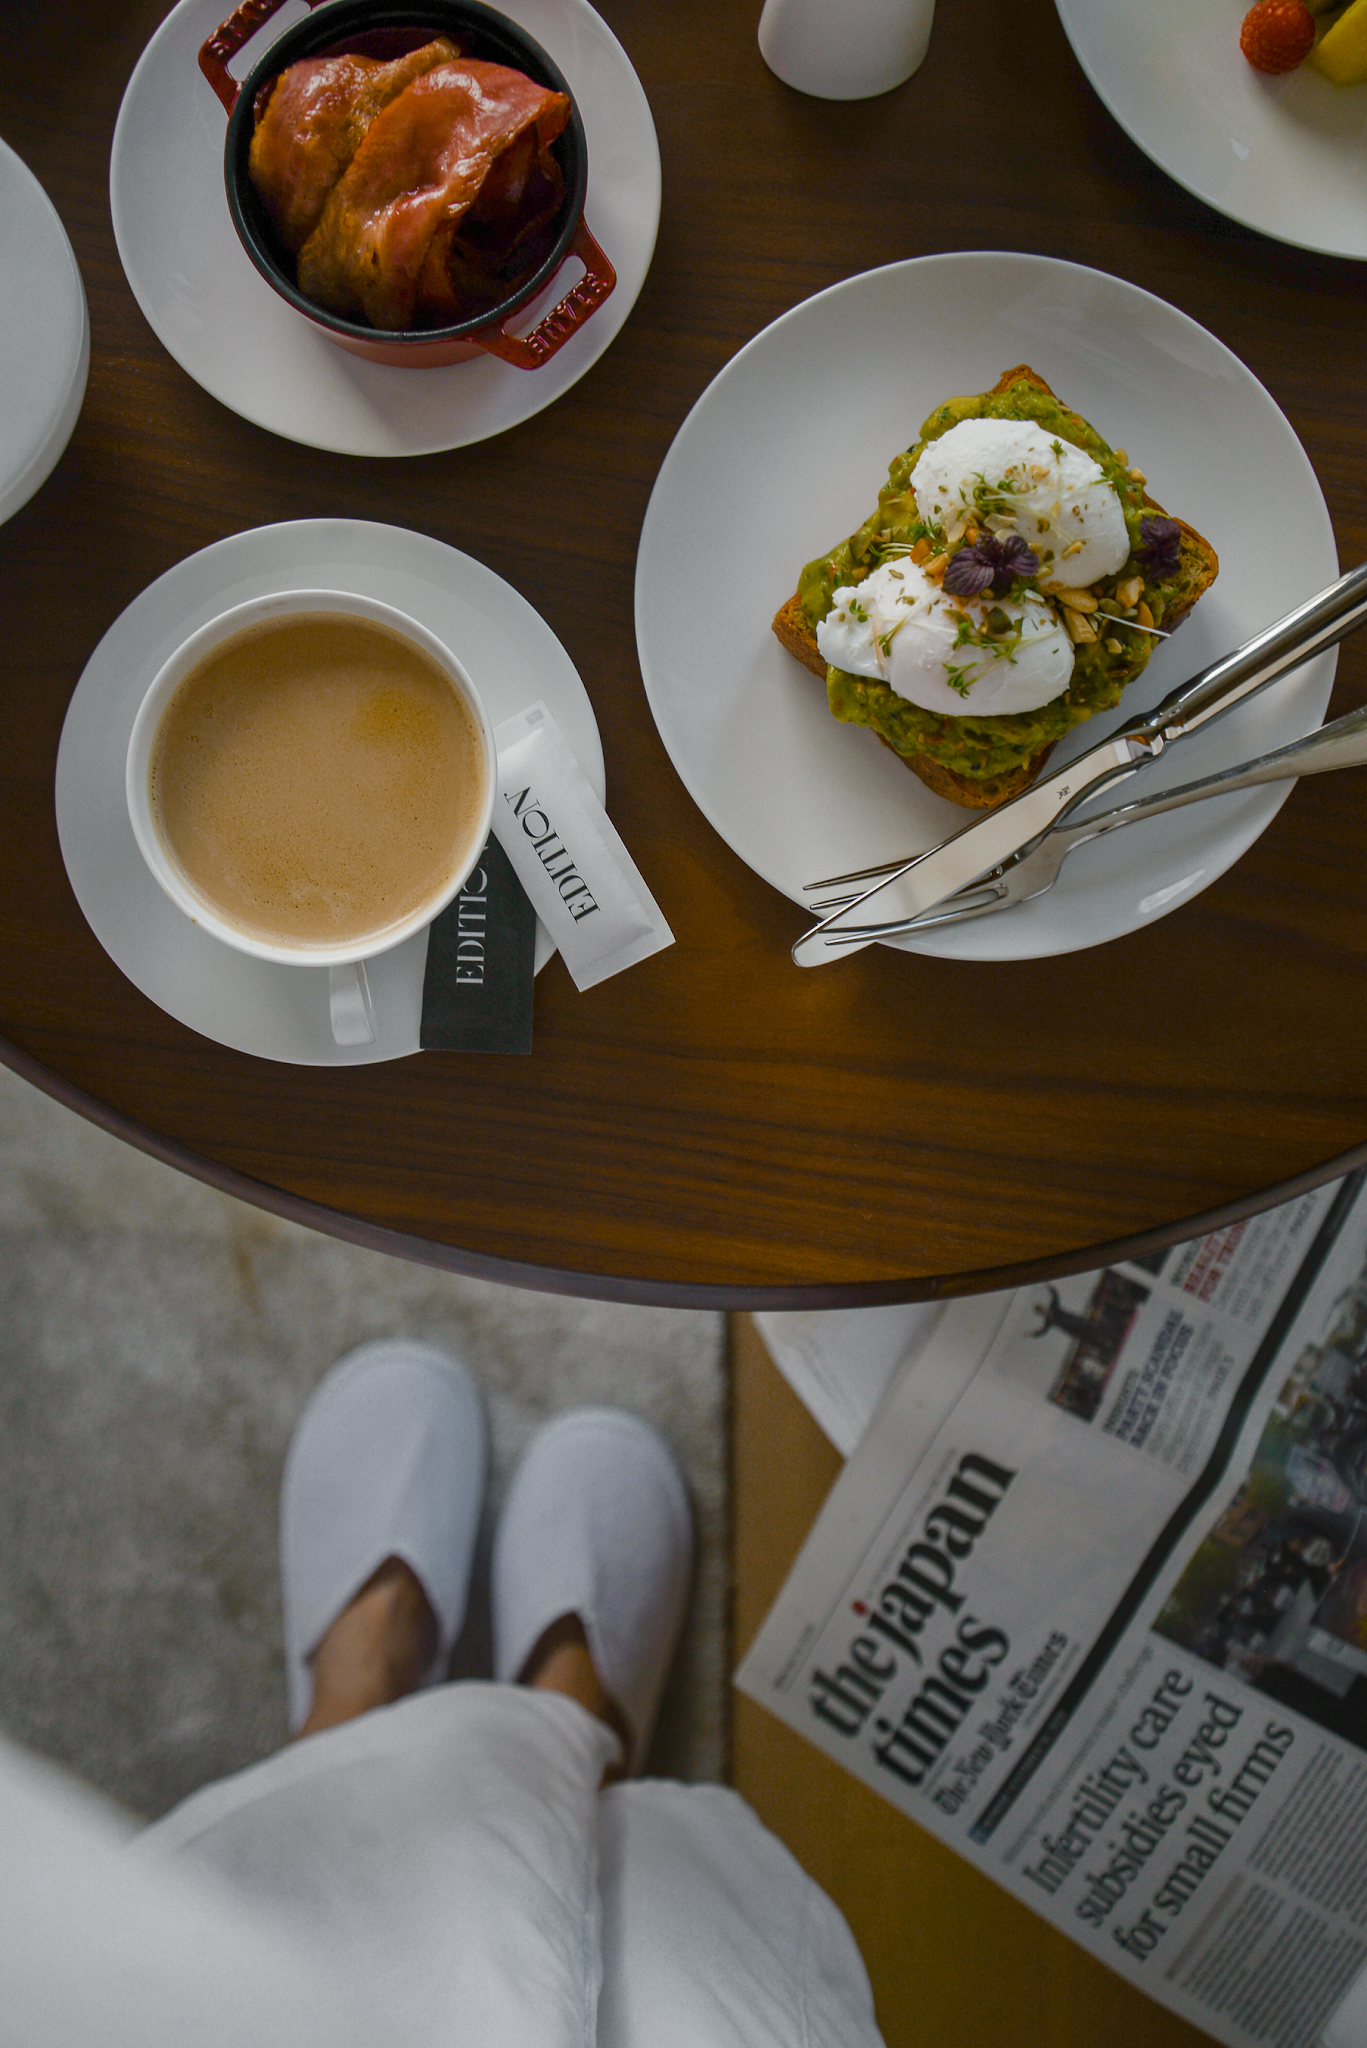 Hotel breakfast, avocado toast, Best new hotel in Tokyo 2020, staycation at the Tokyo Edition Toranomon,  hotel staycation in Tokyo, Japan newest hotels, Tokyo Tower view hotels in Japan, best Tokyo skyline view with Tokyo Tower / FOREVERVANNY Travel and Style by Van Le